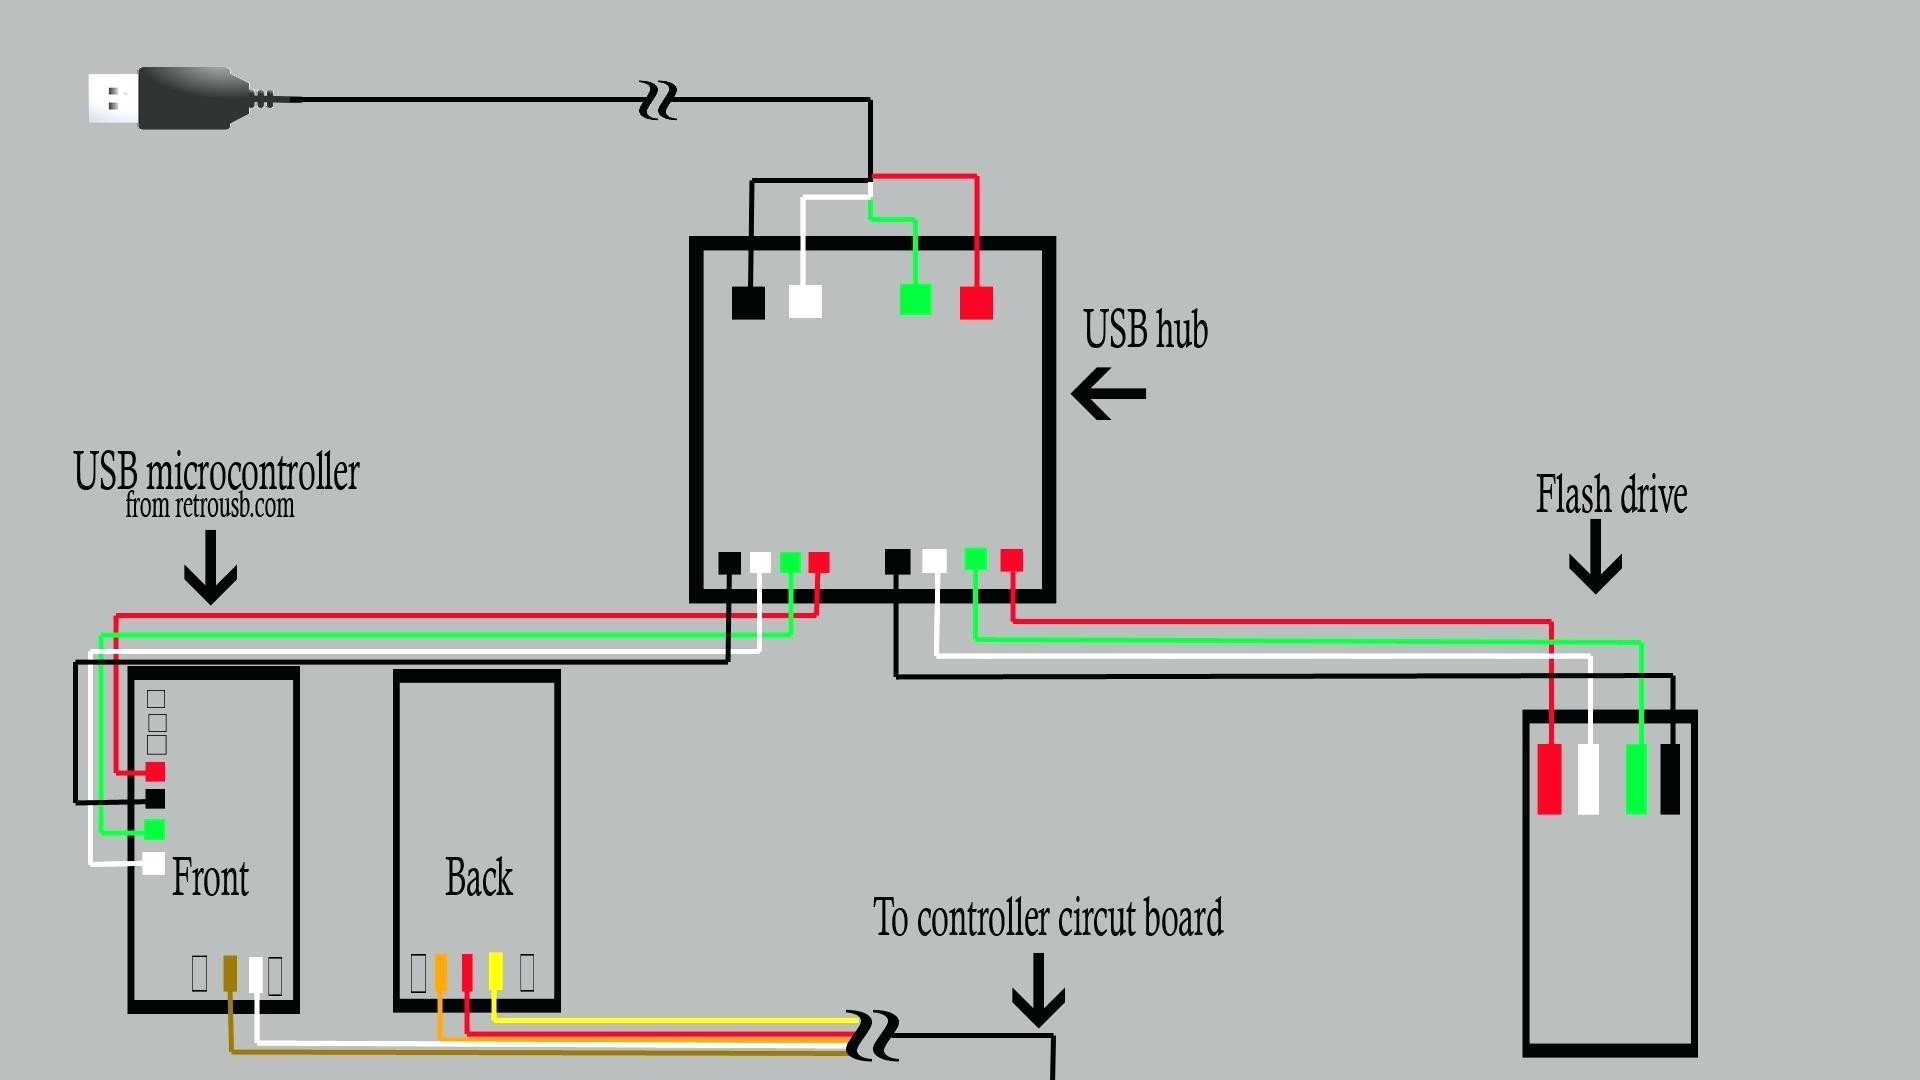 Pin 2001 Ford F250 Fuse Box Diagram On Pinterest